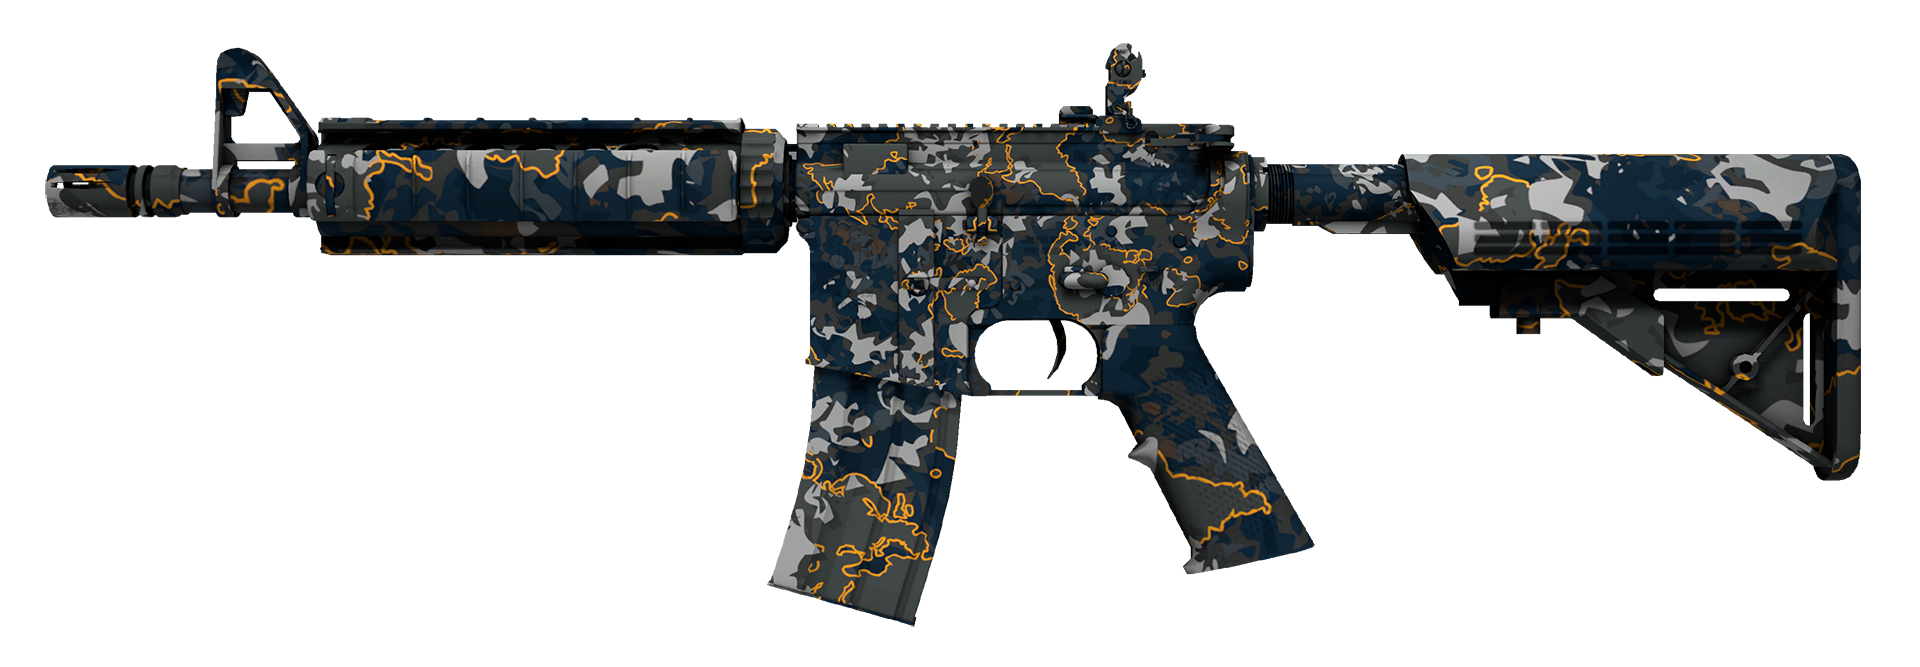 M4A4 Global Offensive Large Rendering